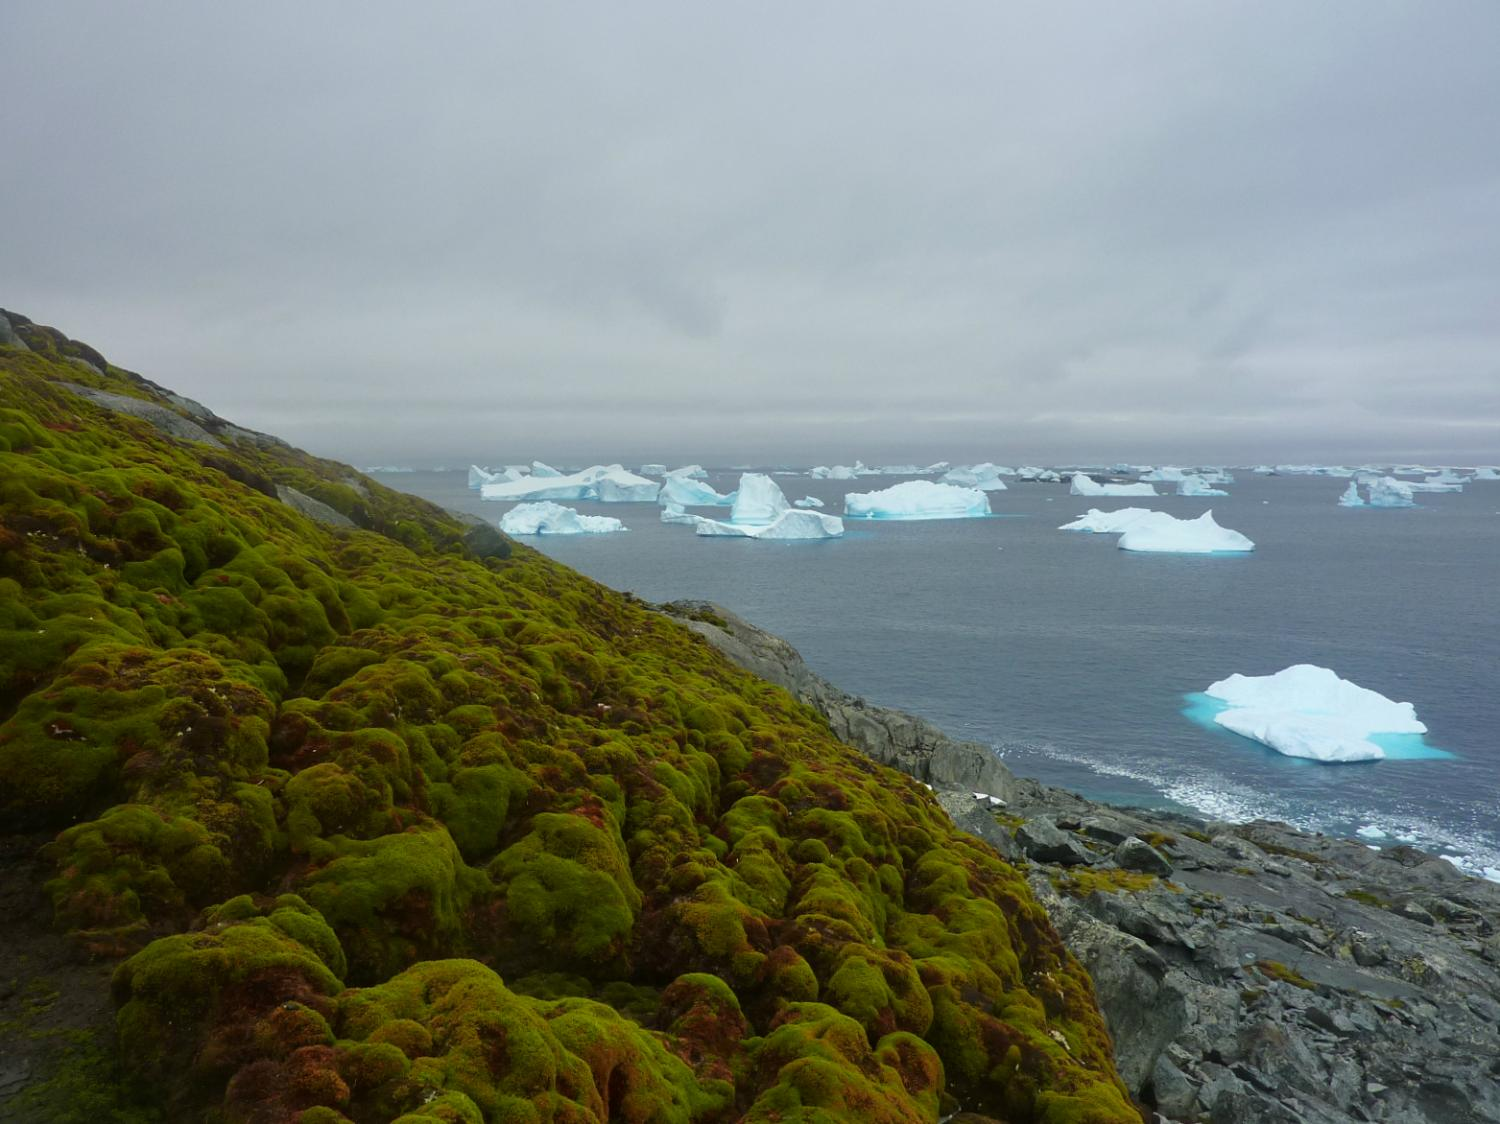 Global warming turning Antarctica green